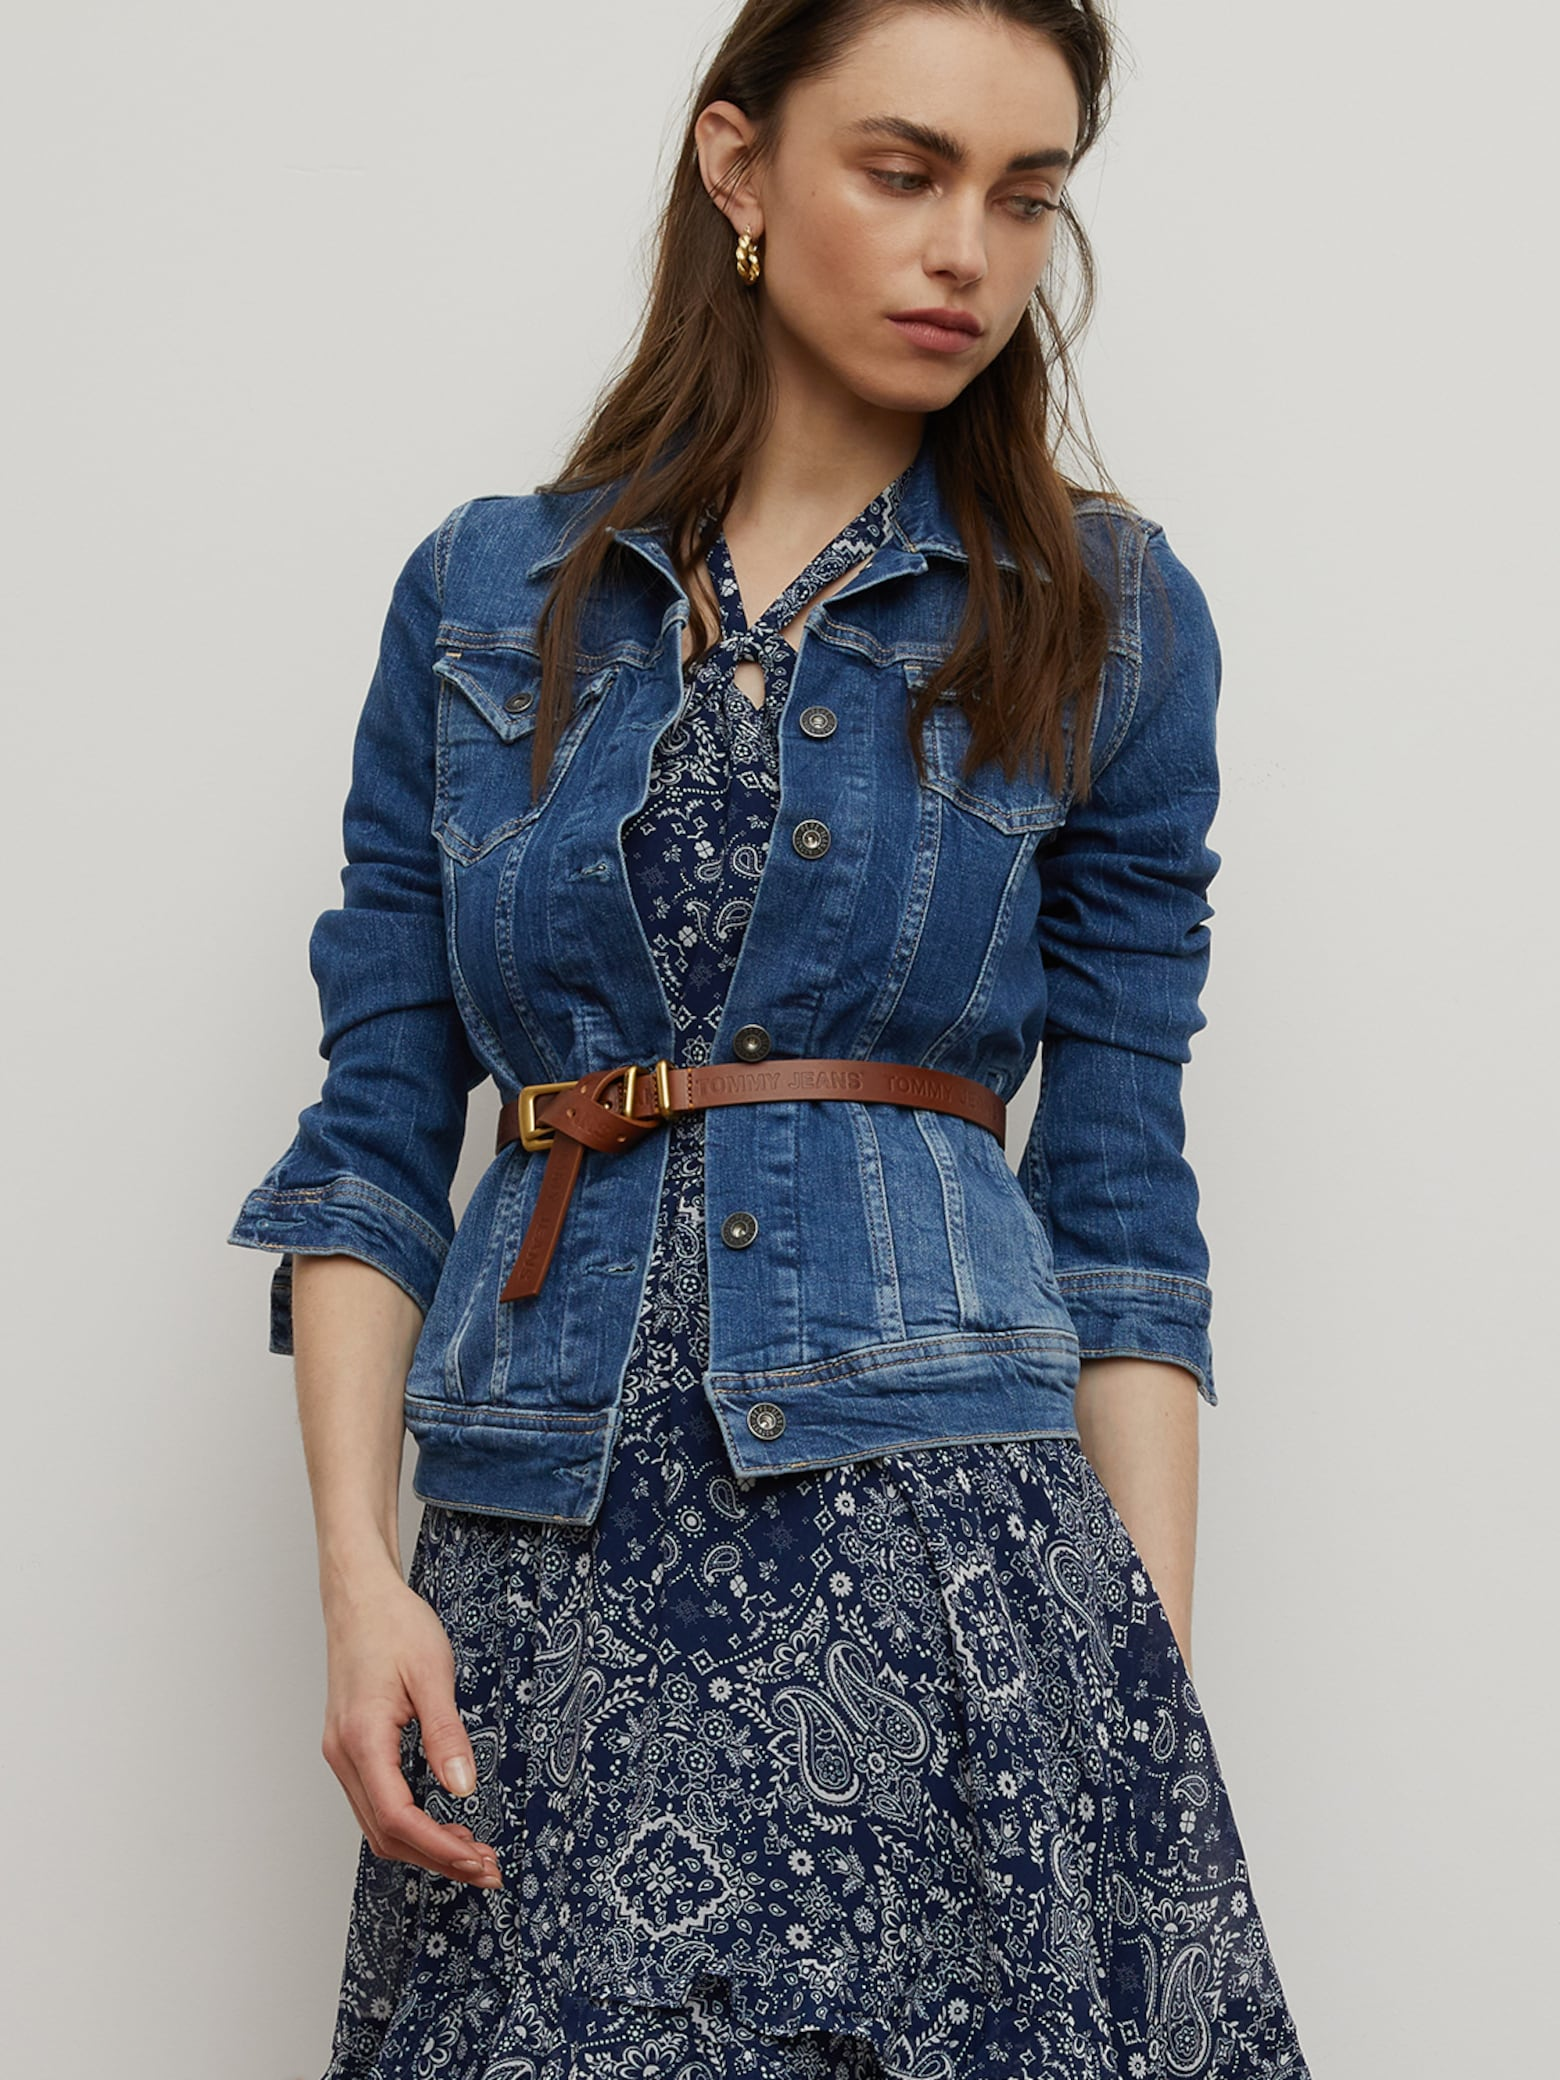 Top picks for spring Charlie Weiss x Pepe Jeans